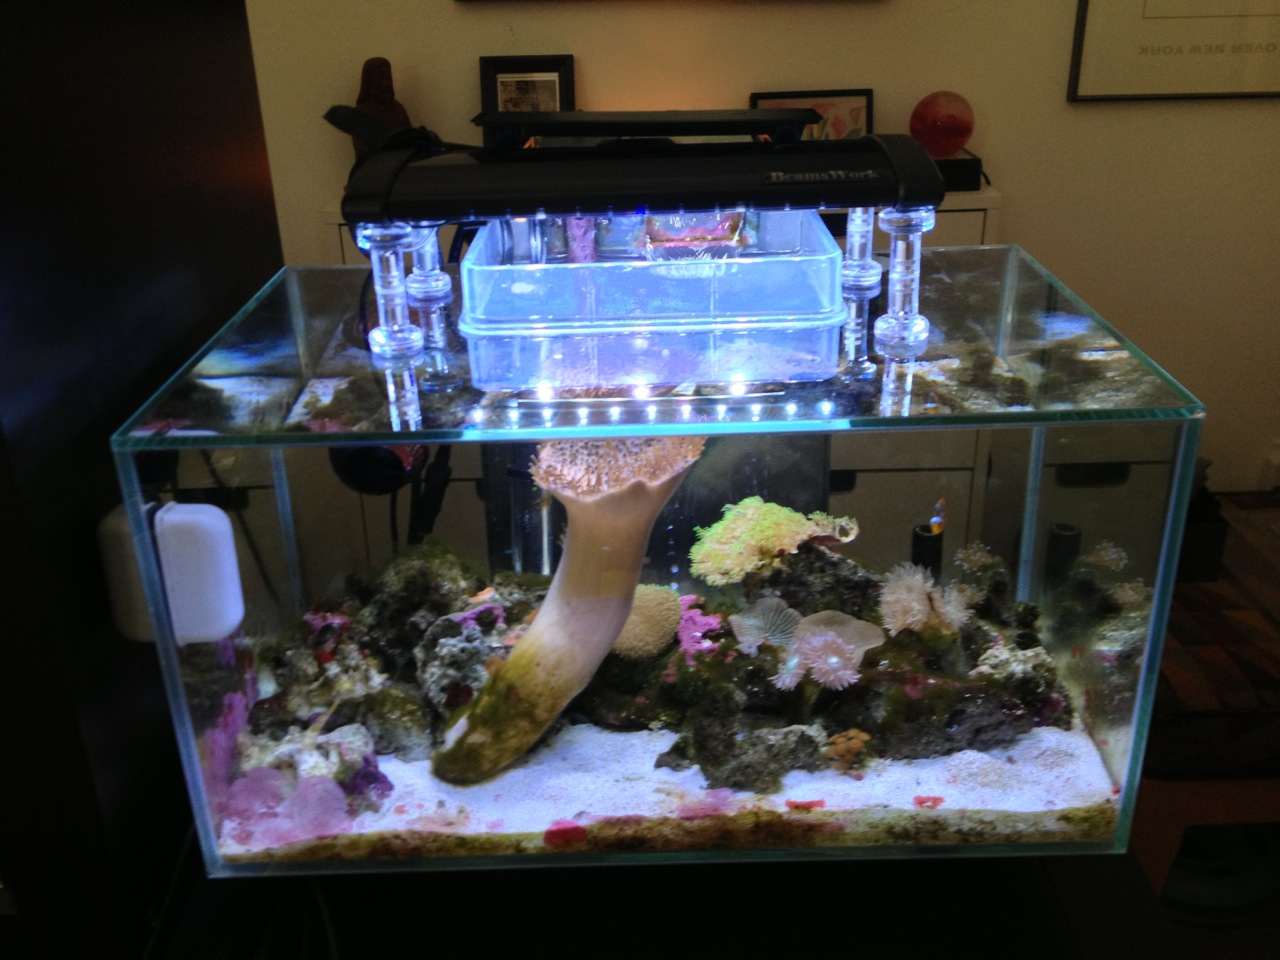 Ikea Grundtal Countertop Lighting ~ aquarium stand ikea  Controversial  ugly IKEA design  Aquarium Sta